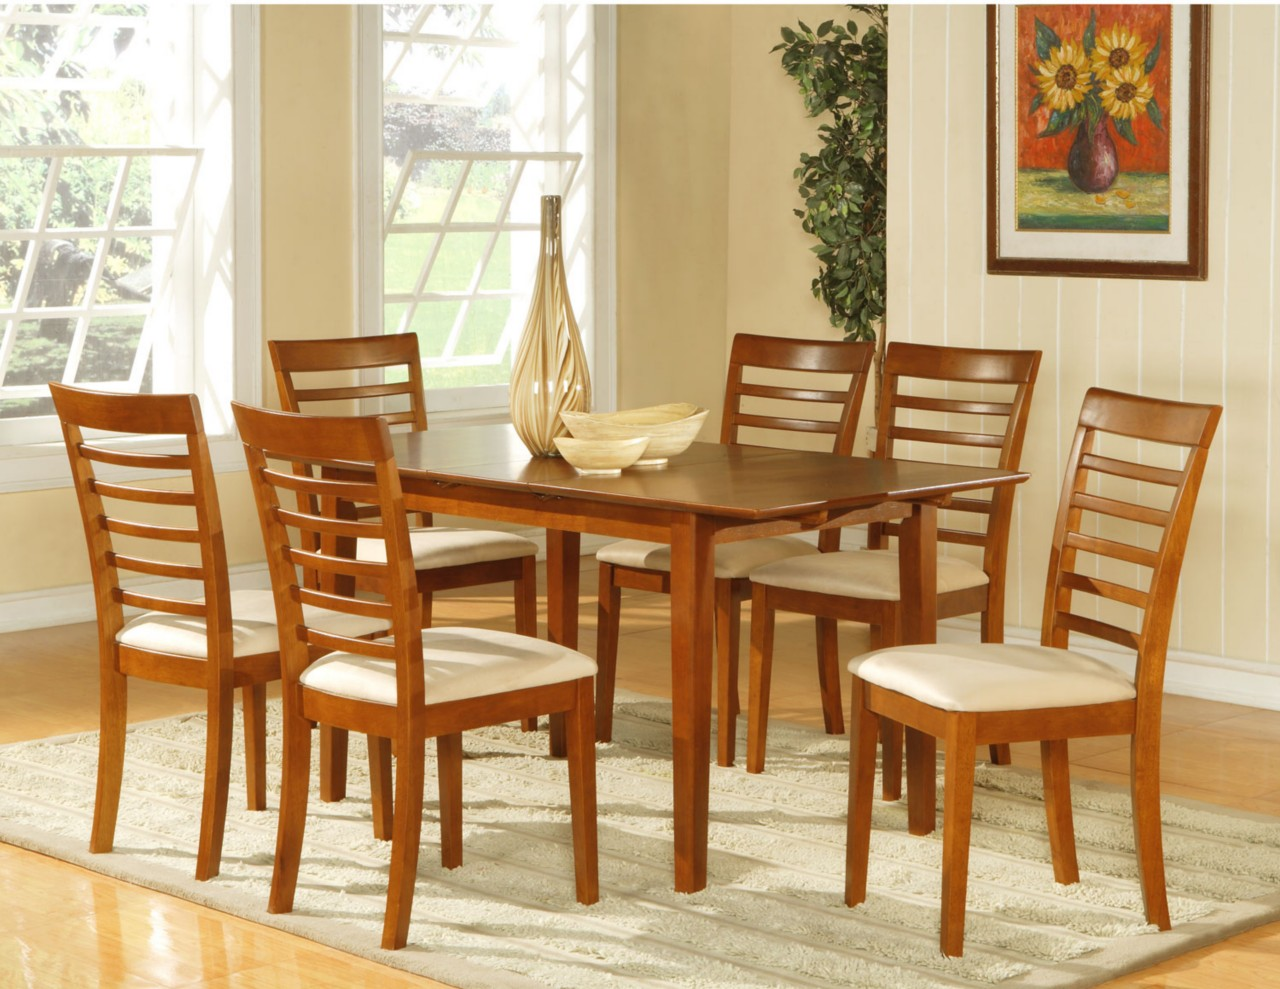 7pc dining room dinette set table and 6 chairs brown ebay for Dining room sets for 6